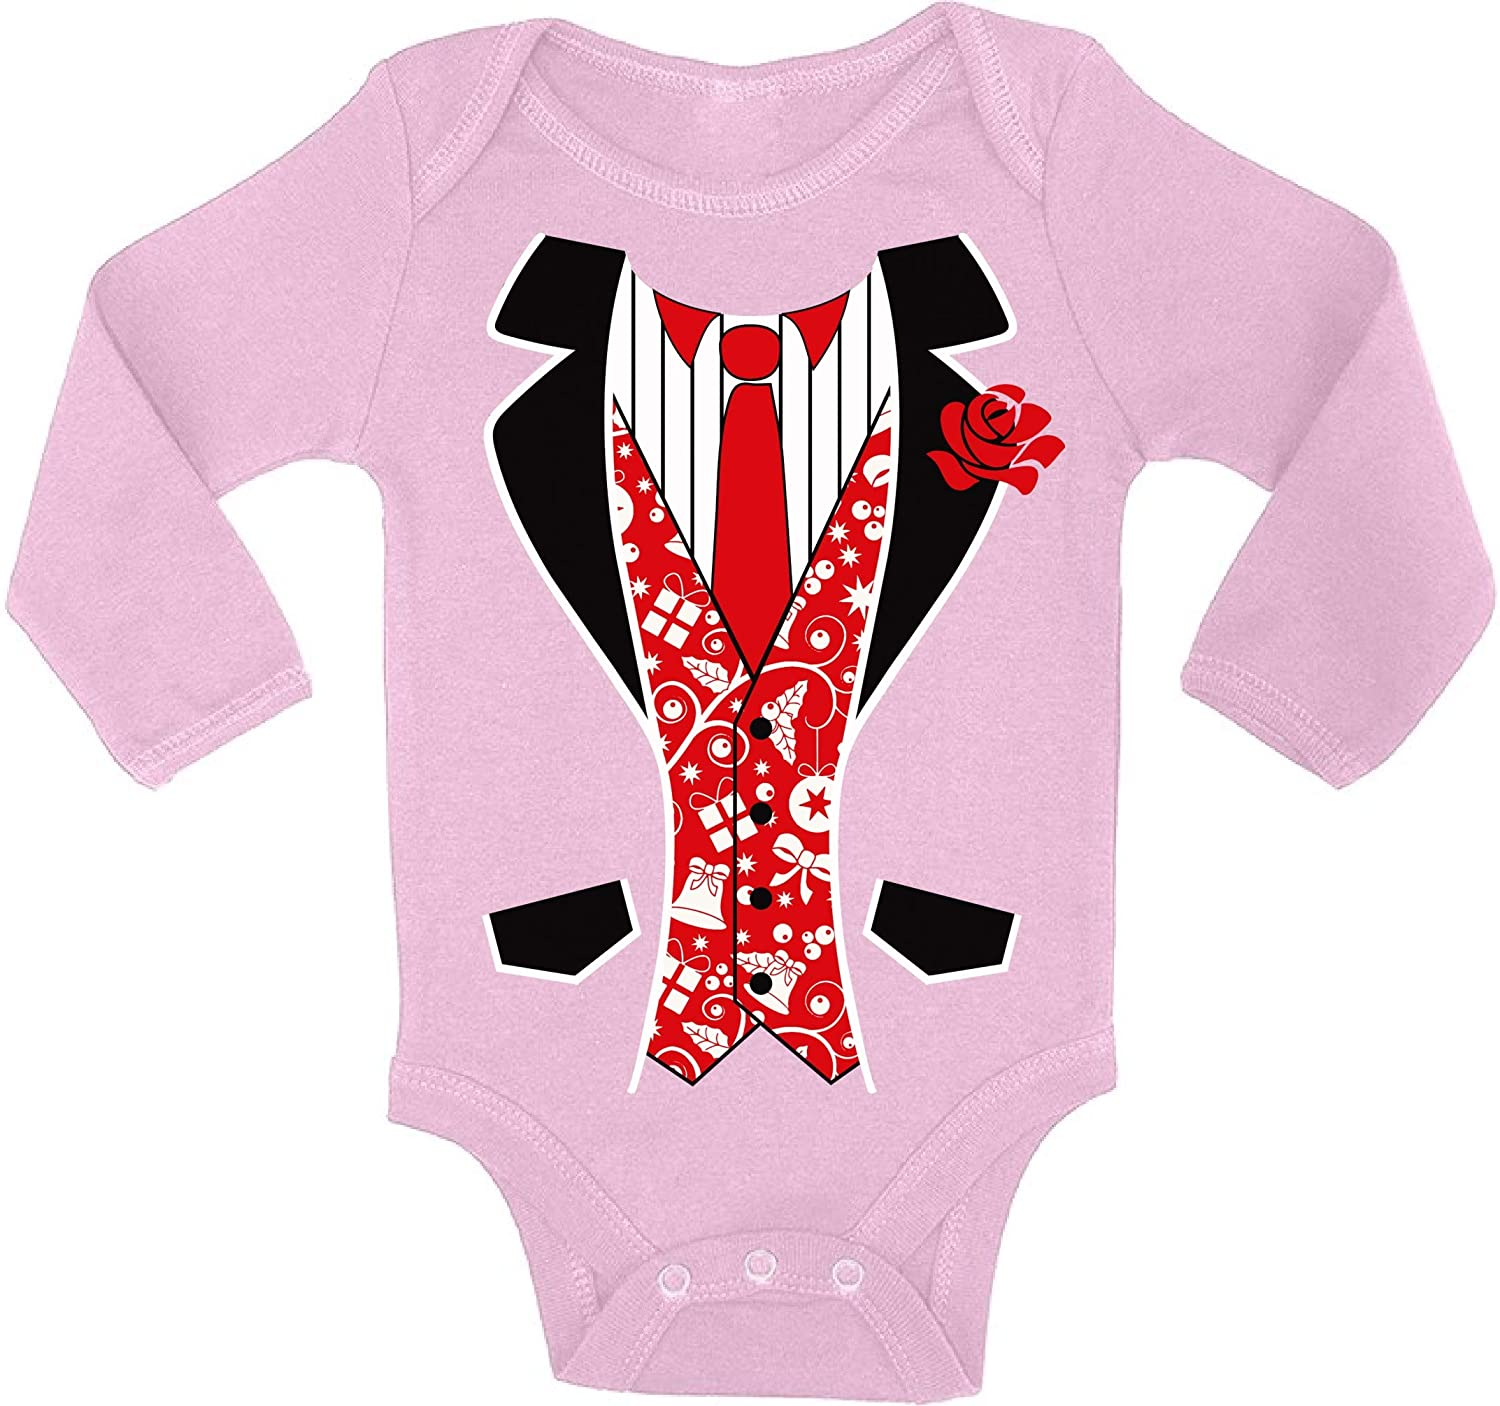 Awkward Styles Ugly Xmas Baby Outfit Bodysuit Red Christmas Tuxedo Baby Romper